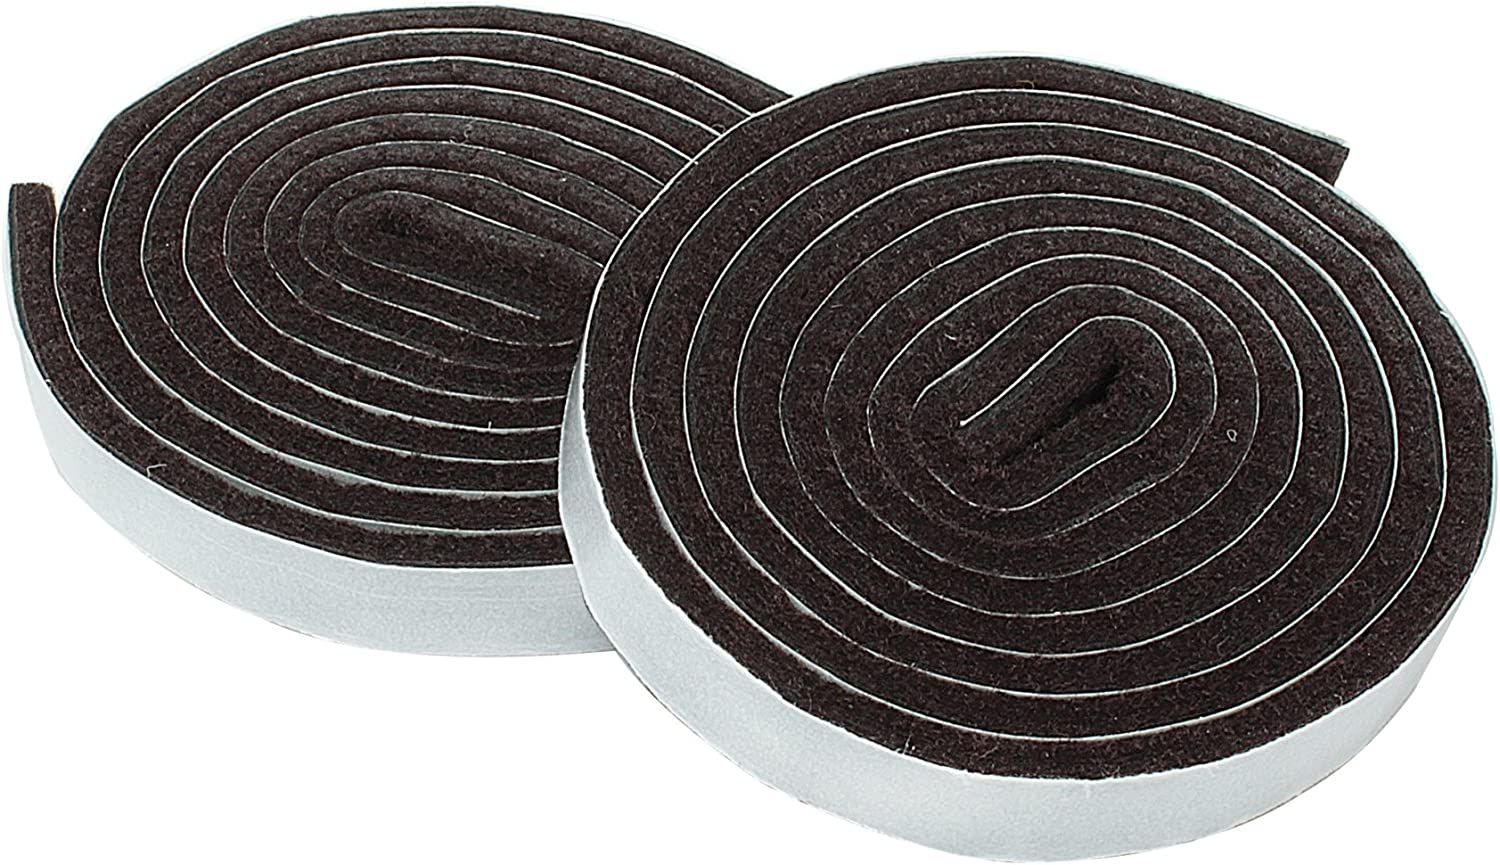 Smart Surface 8873 Heavy Duty 1/2-Inch by 60-Inch Self Adhesive Furniture Felt Strips Brown 2-Piece Value Pack